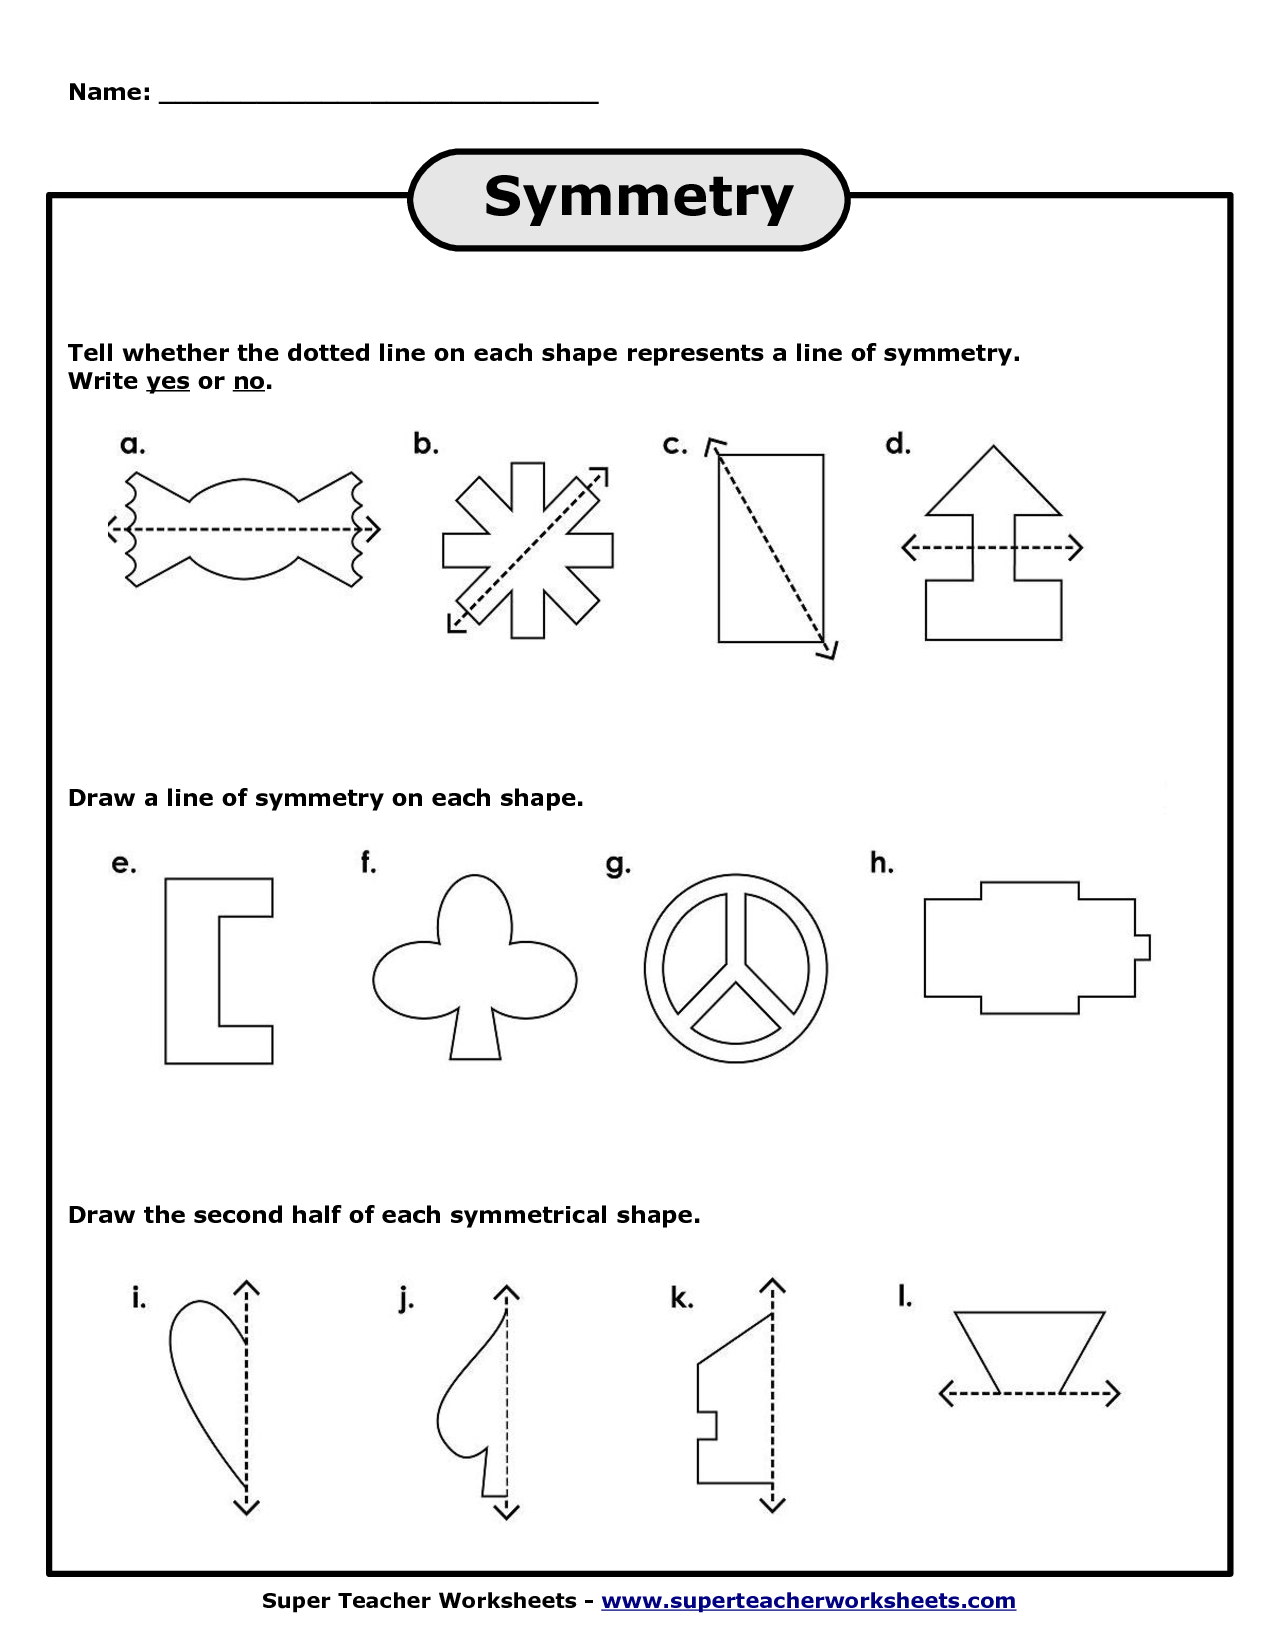 Cozy Reflective Symmetry 1 Worksheet For 4th 5th Grade